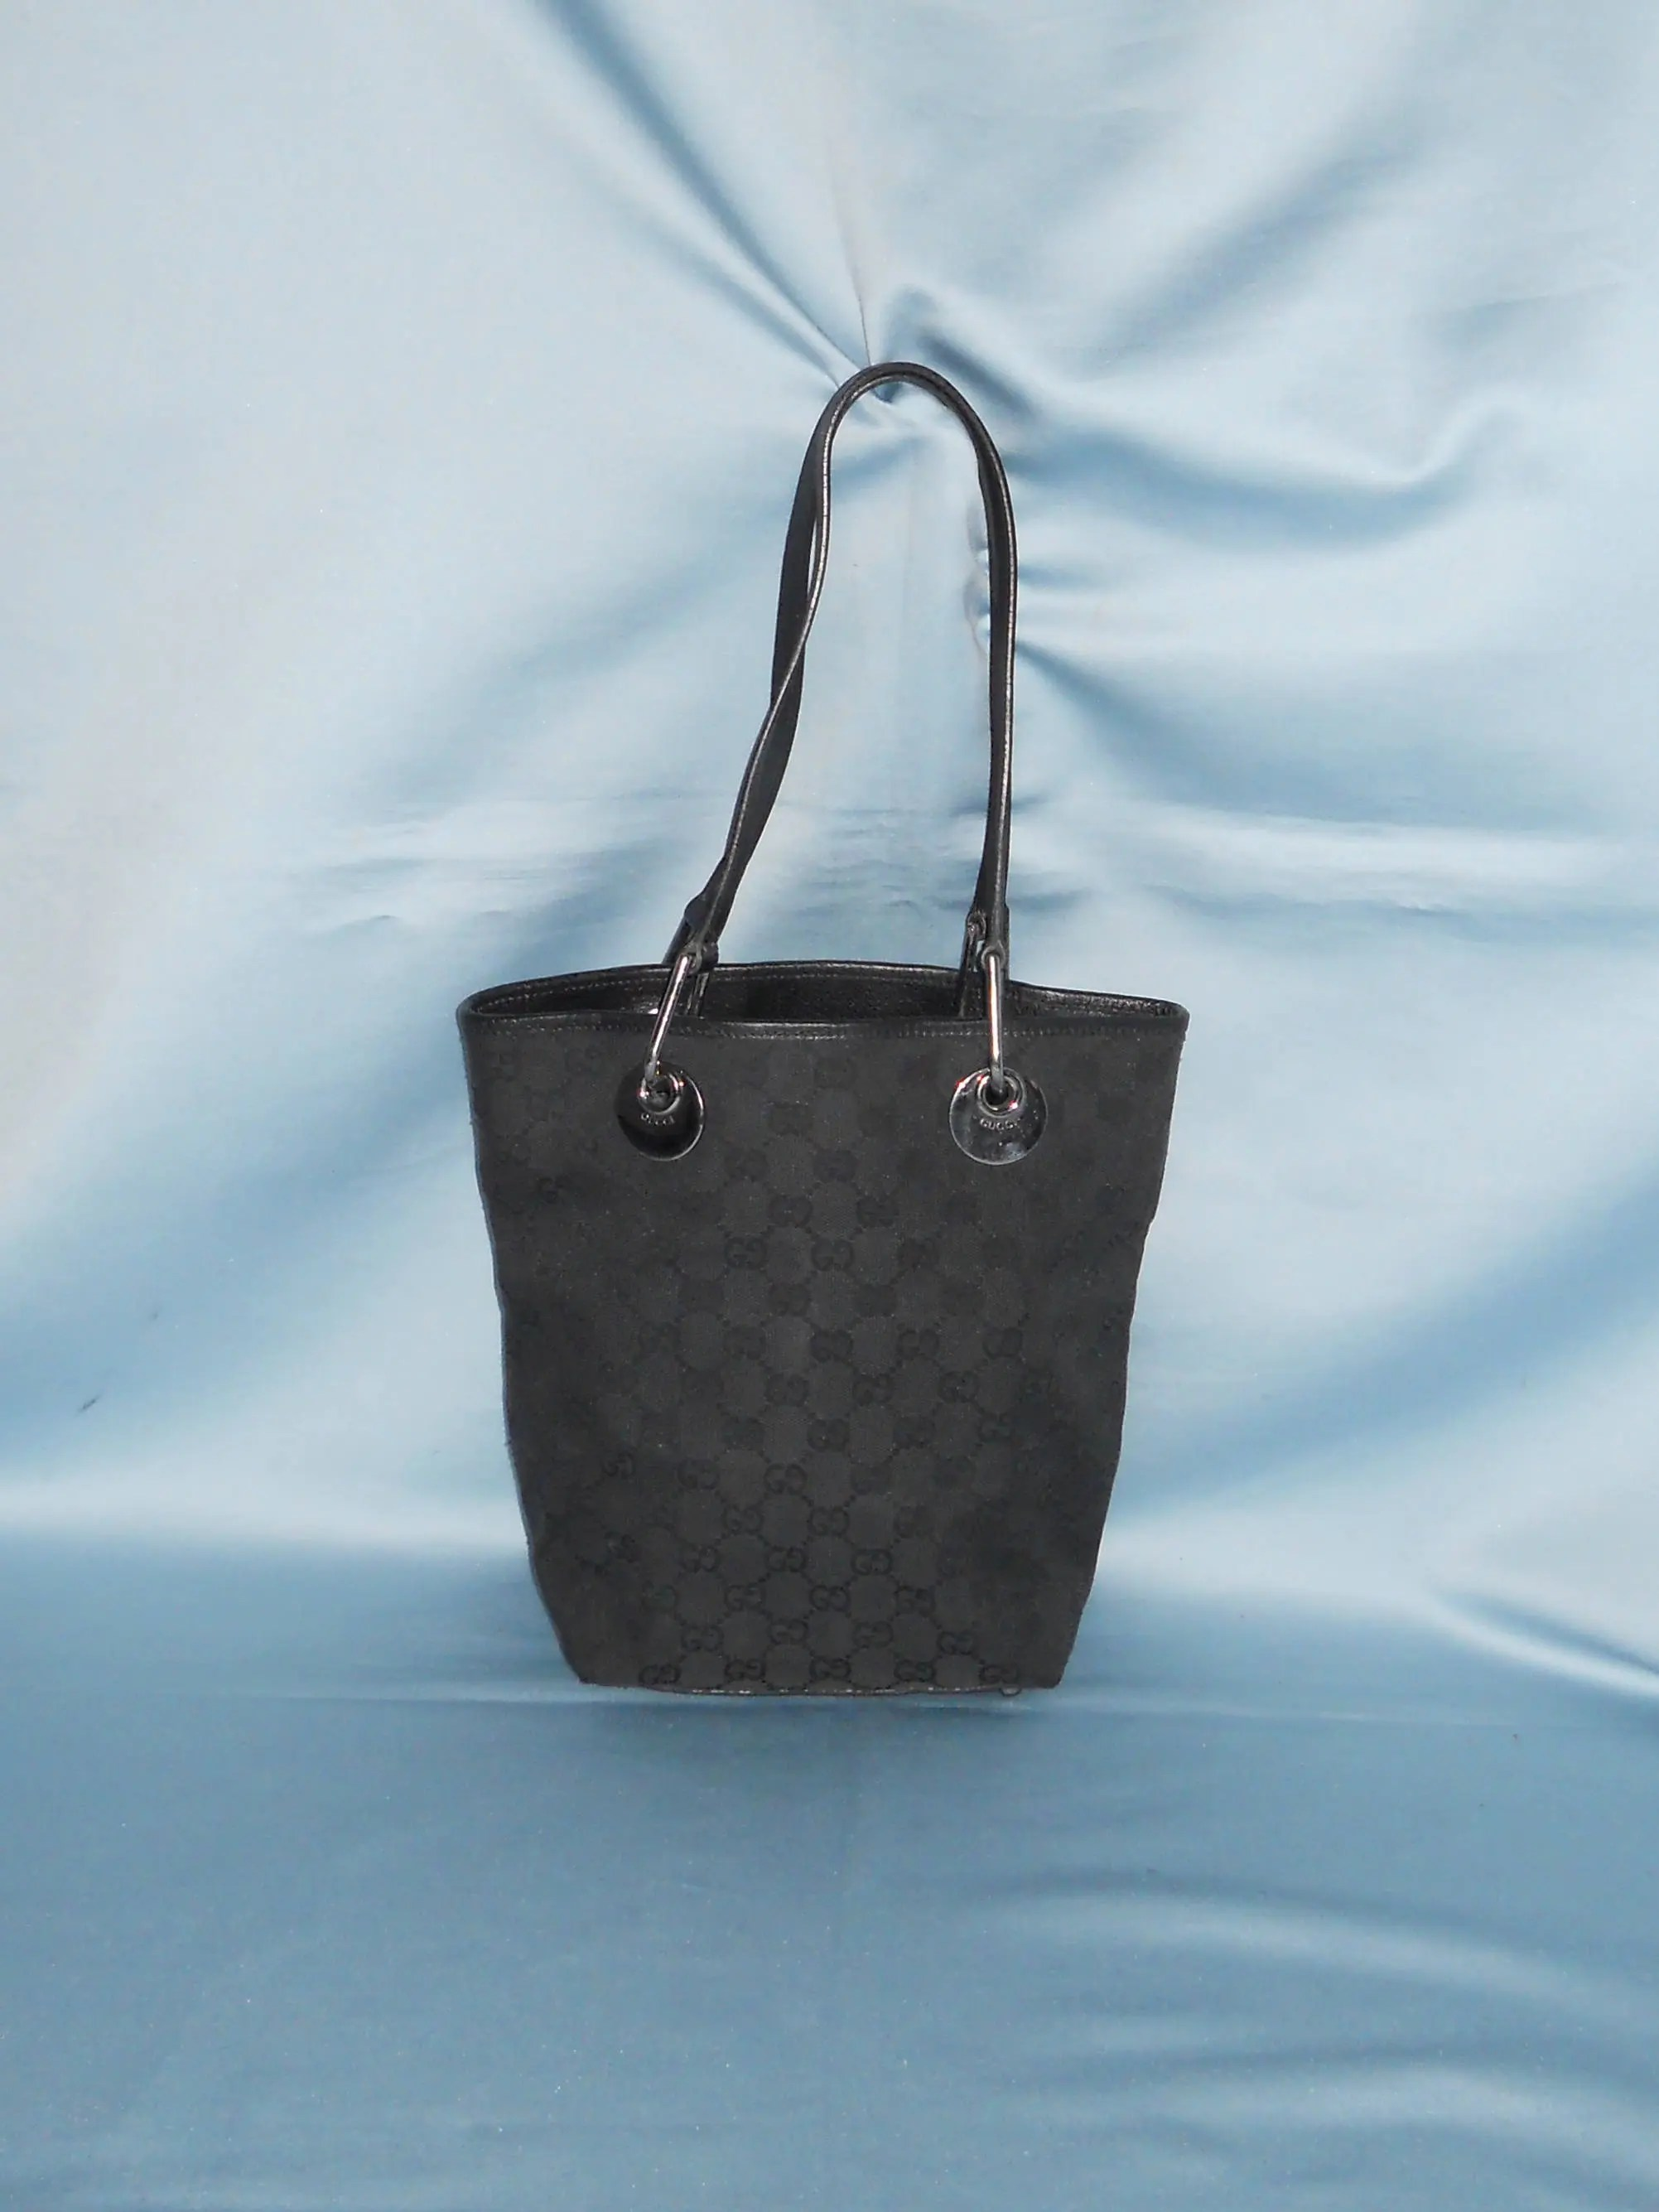 Etsy Vintage Gucci Authentic Vintage Gucci Bag Serial Code Fabric And Genuine Leather